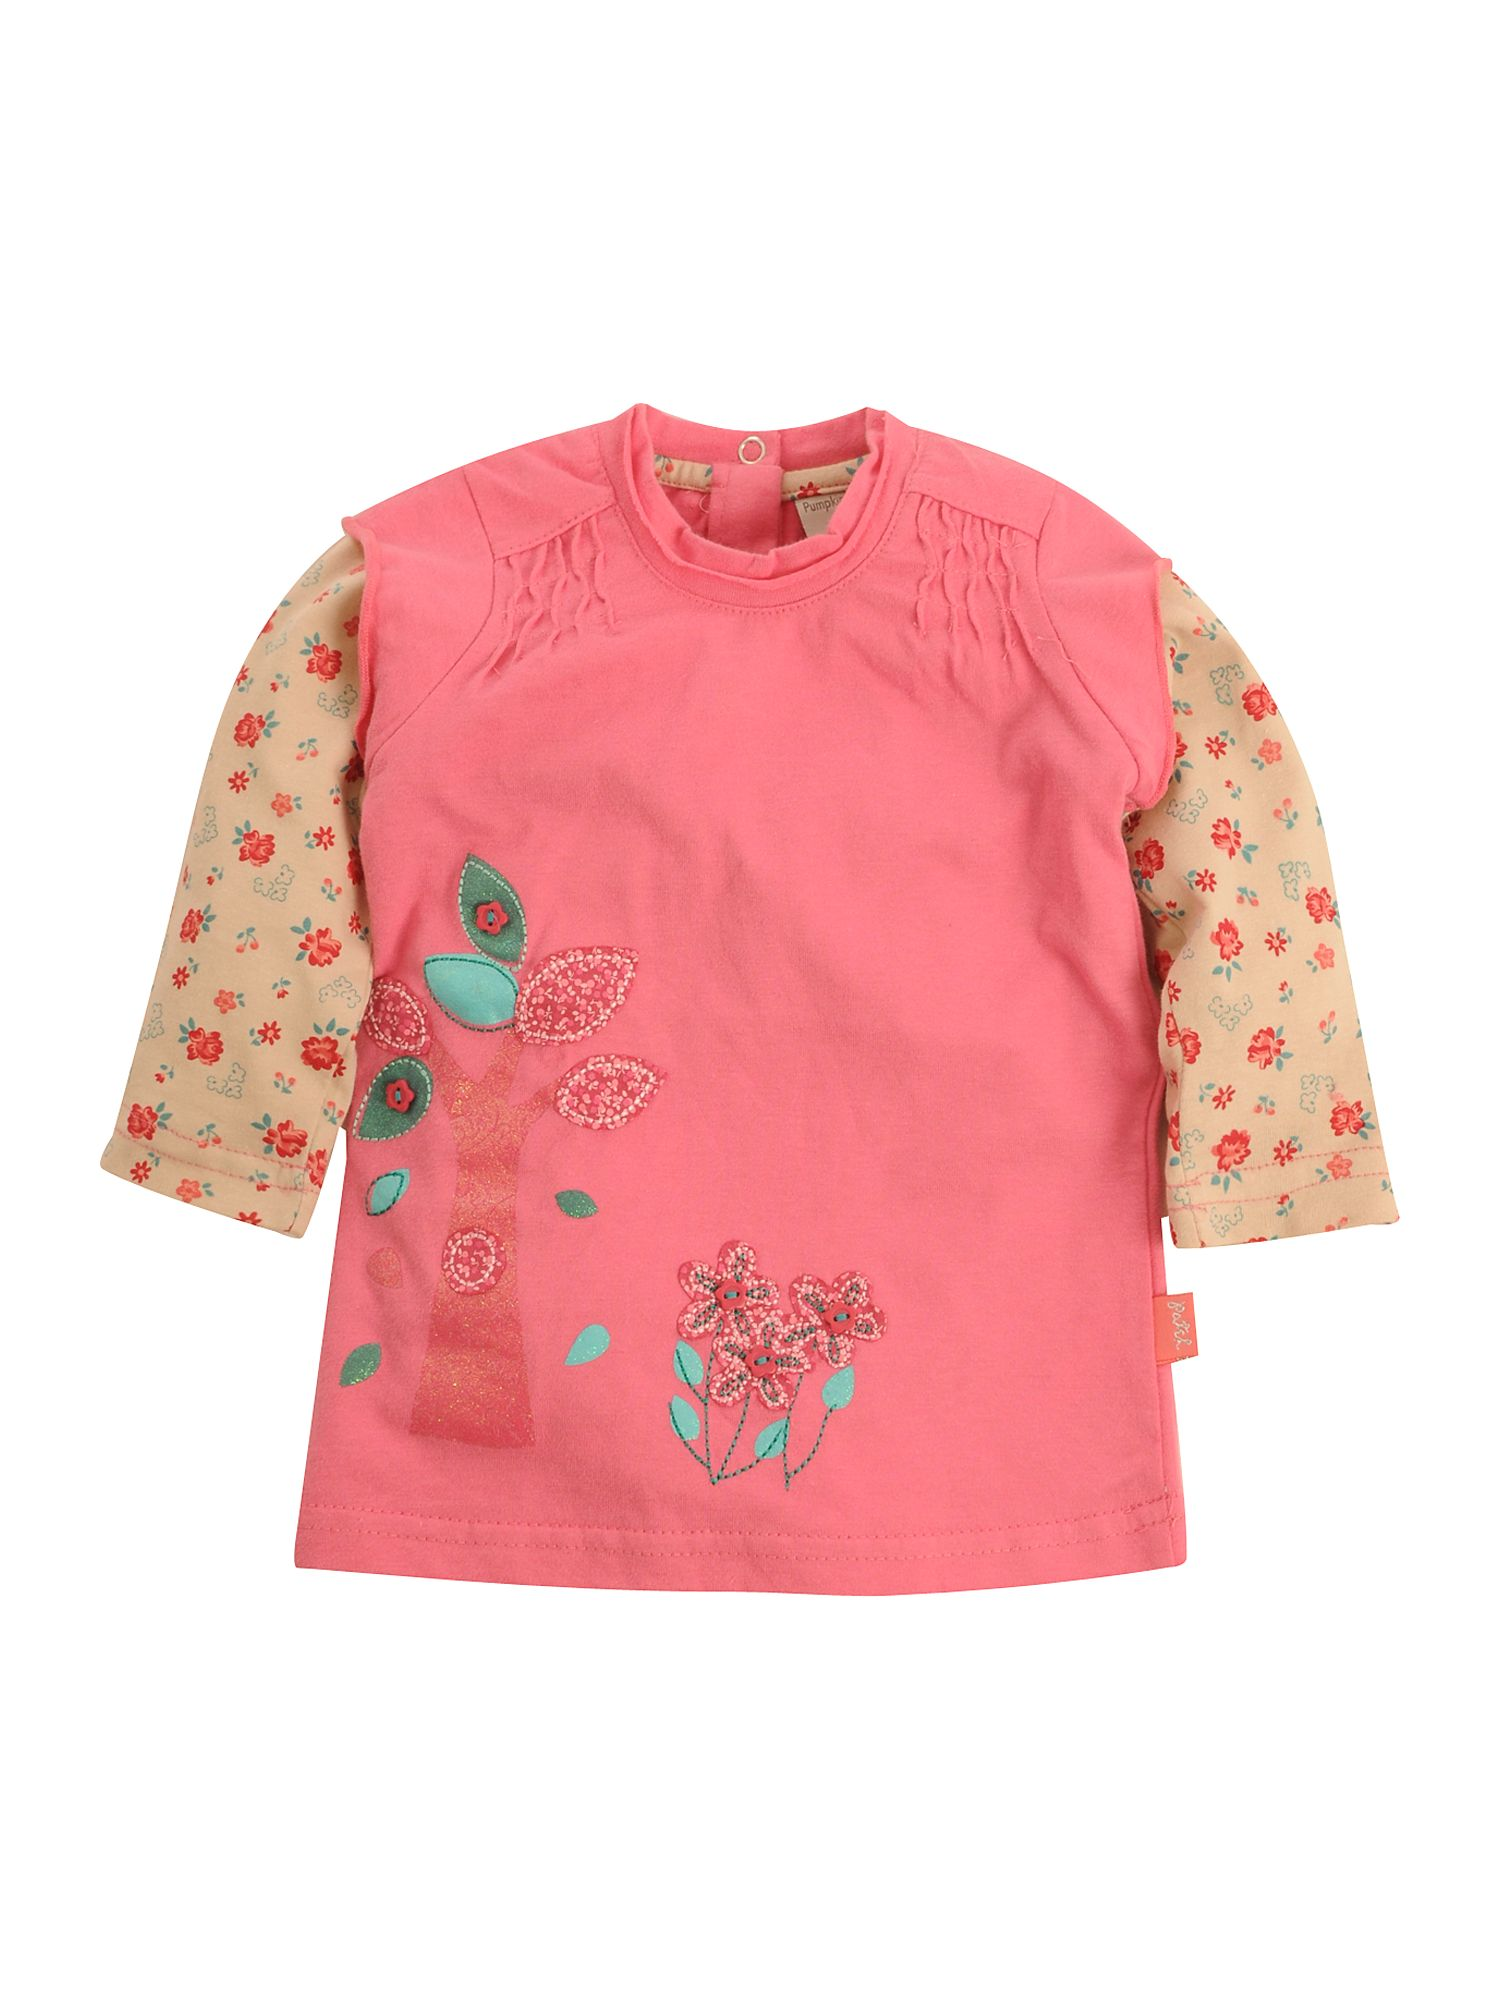 Pumpkin Patch Double-sleeved tree applique T-shirt Pink product image